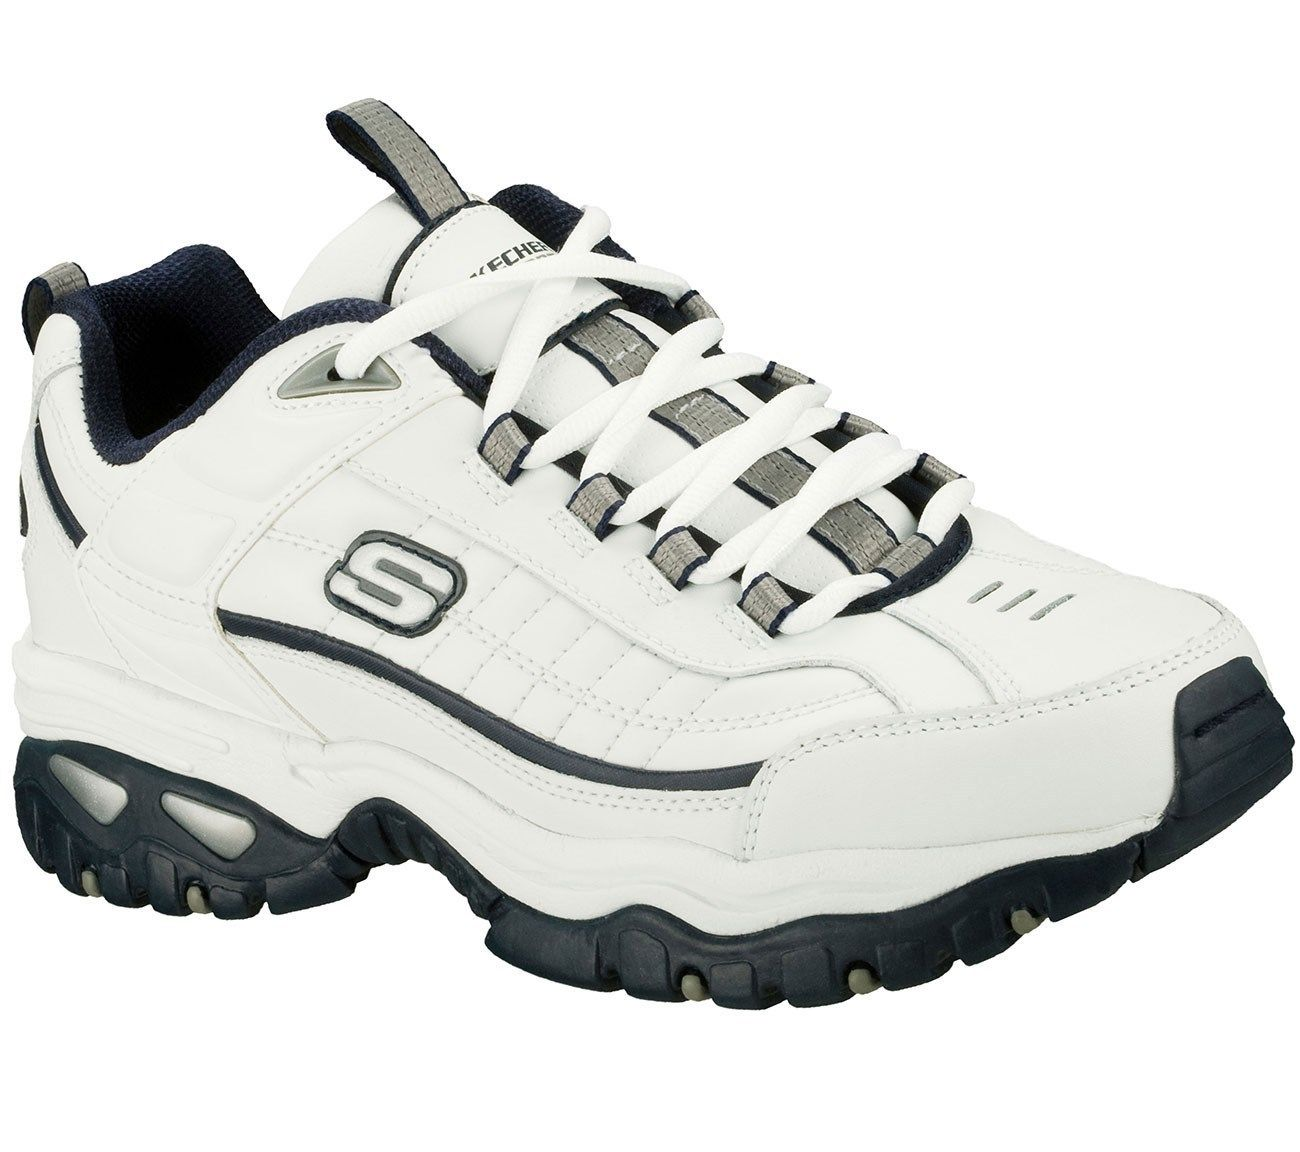 Skechers 50081 WNV Men's ENERGY-AFTER BURN Training Shoes by Skechers